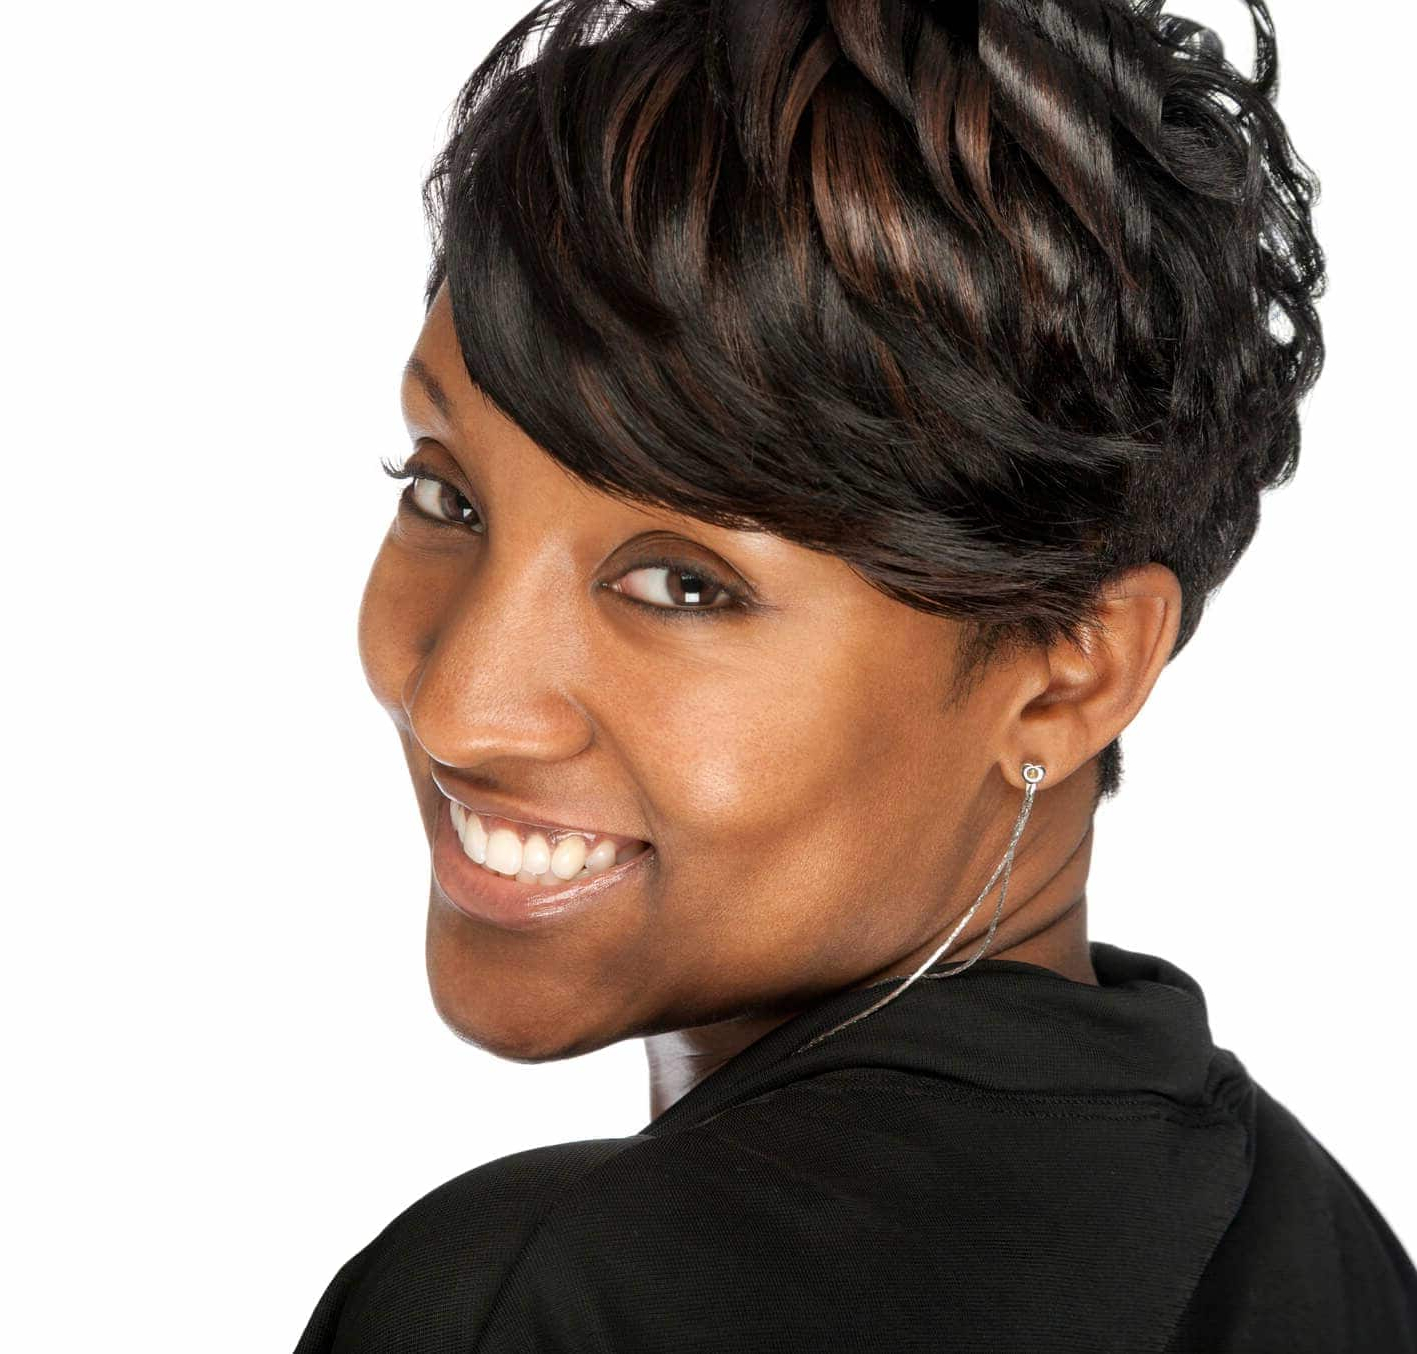 Short Hairstyles For Black Women: 18 Styles We Love Throughout Black Woman Short Hairstyles (View 23 of 25)